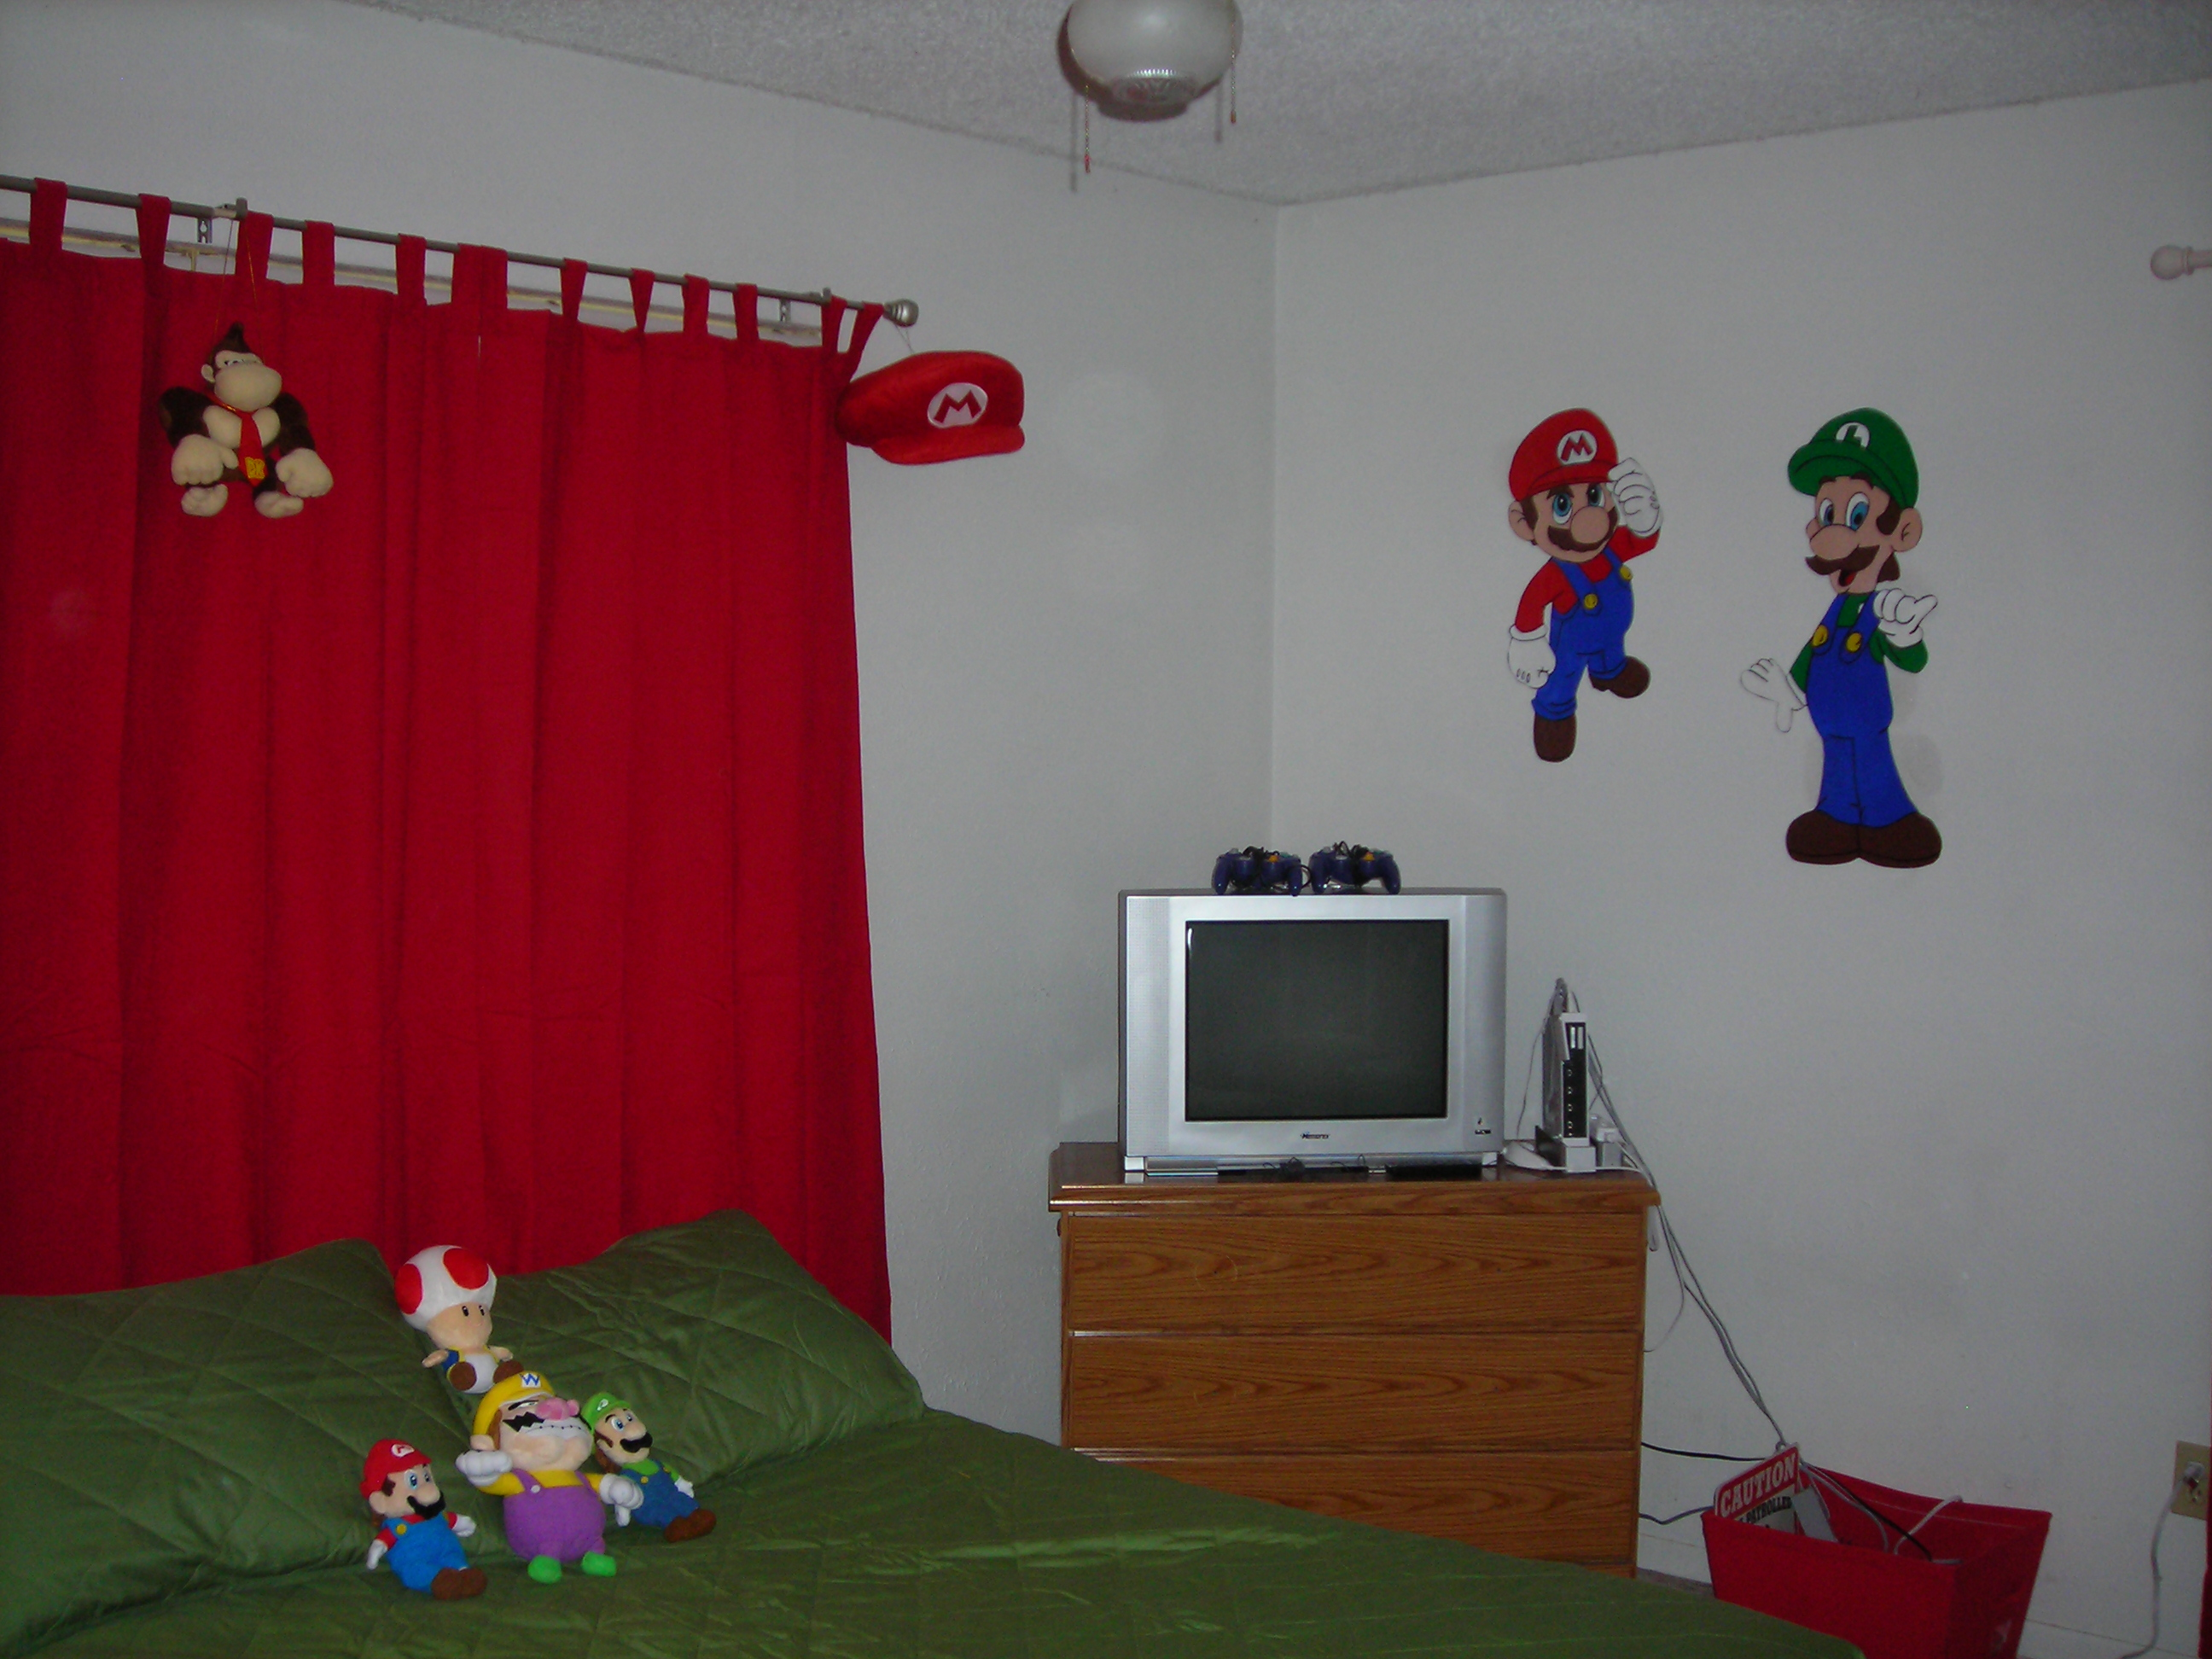 new red curtains (mario-inspired), new green bedspread (luigi-inspired), mario and luigi murals on wall, over his gaming area